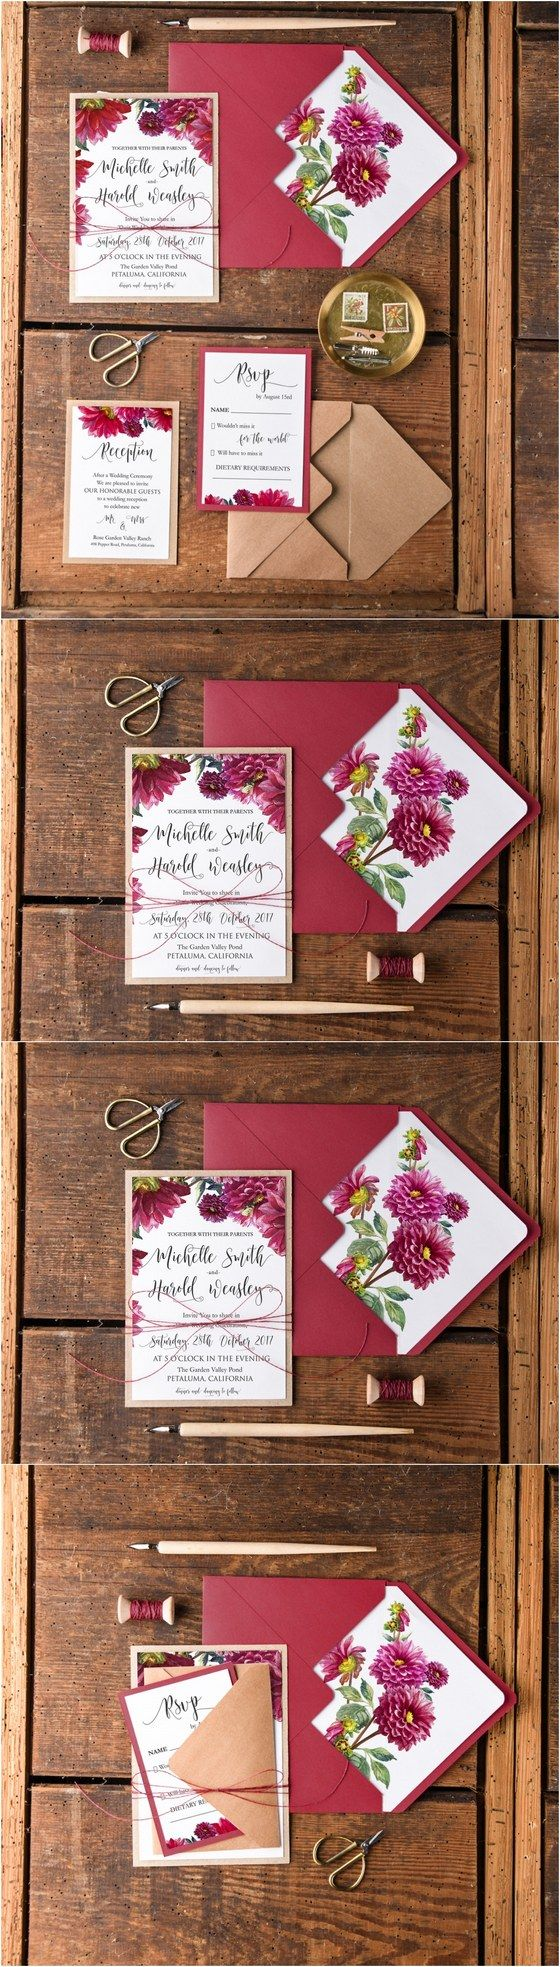 26 best Invitaciones boda images on Pinterest | Invitation cards ...